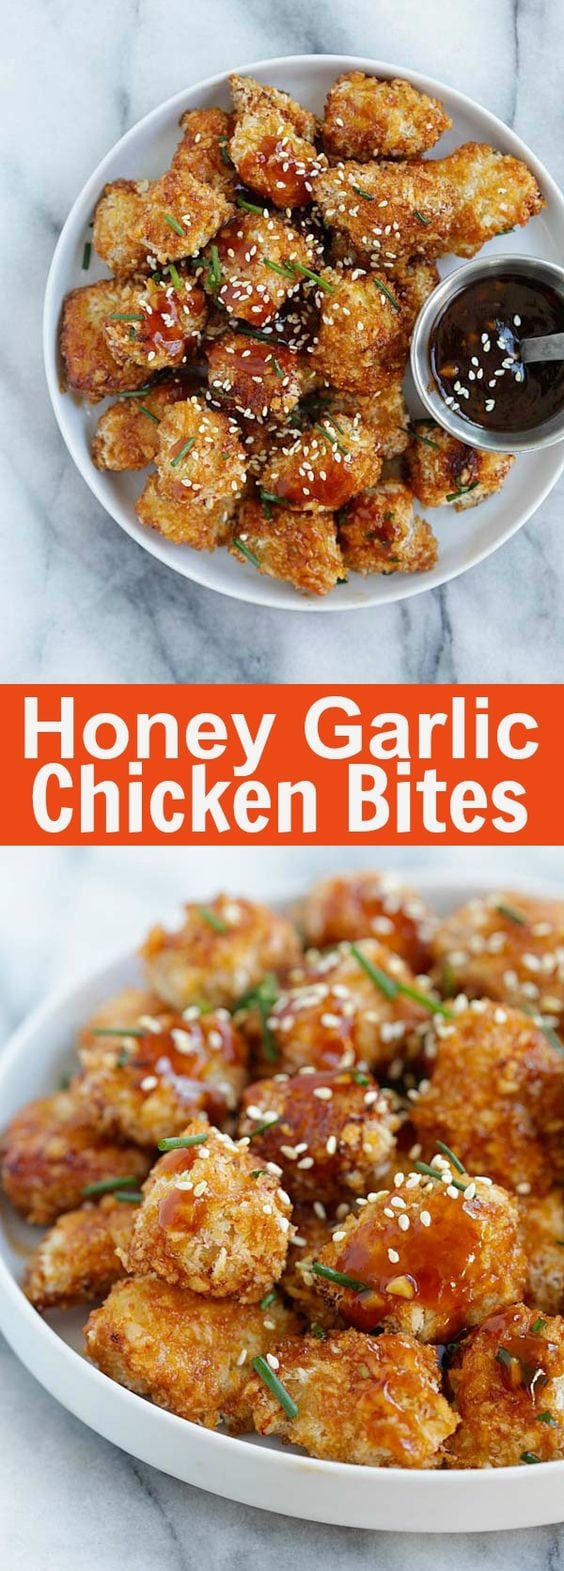 Honey Garlic Chicken Bites – panko-crusted baked chicken nuggets with a sweet and savory honey garlic sauce. So sticky sweet and good | rasamalaysia.com